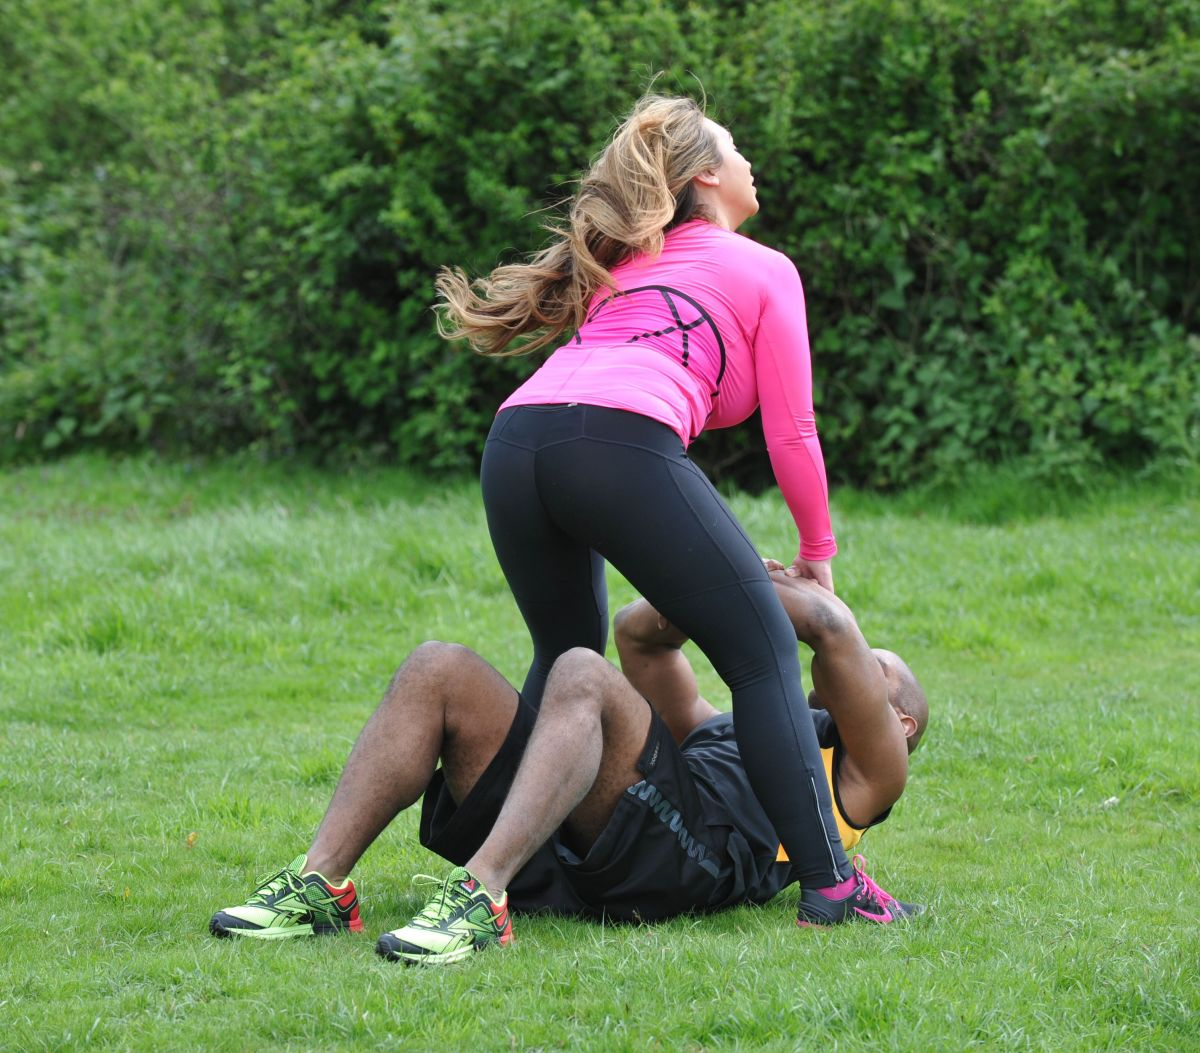 Working Out: LAUREN GOODGER Working Out In King George's Playing Field